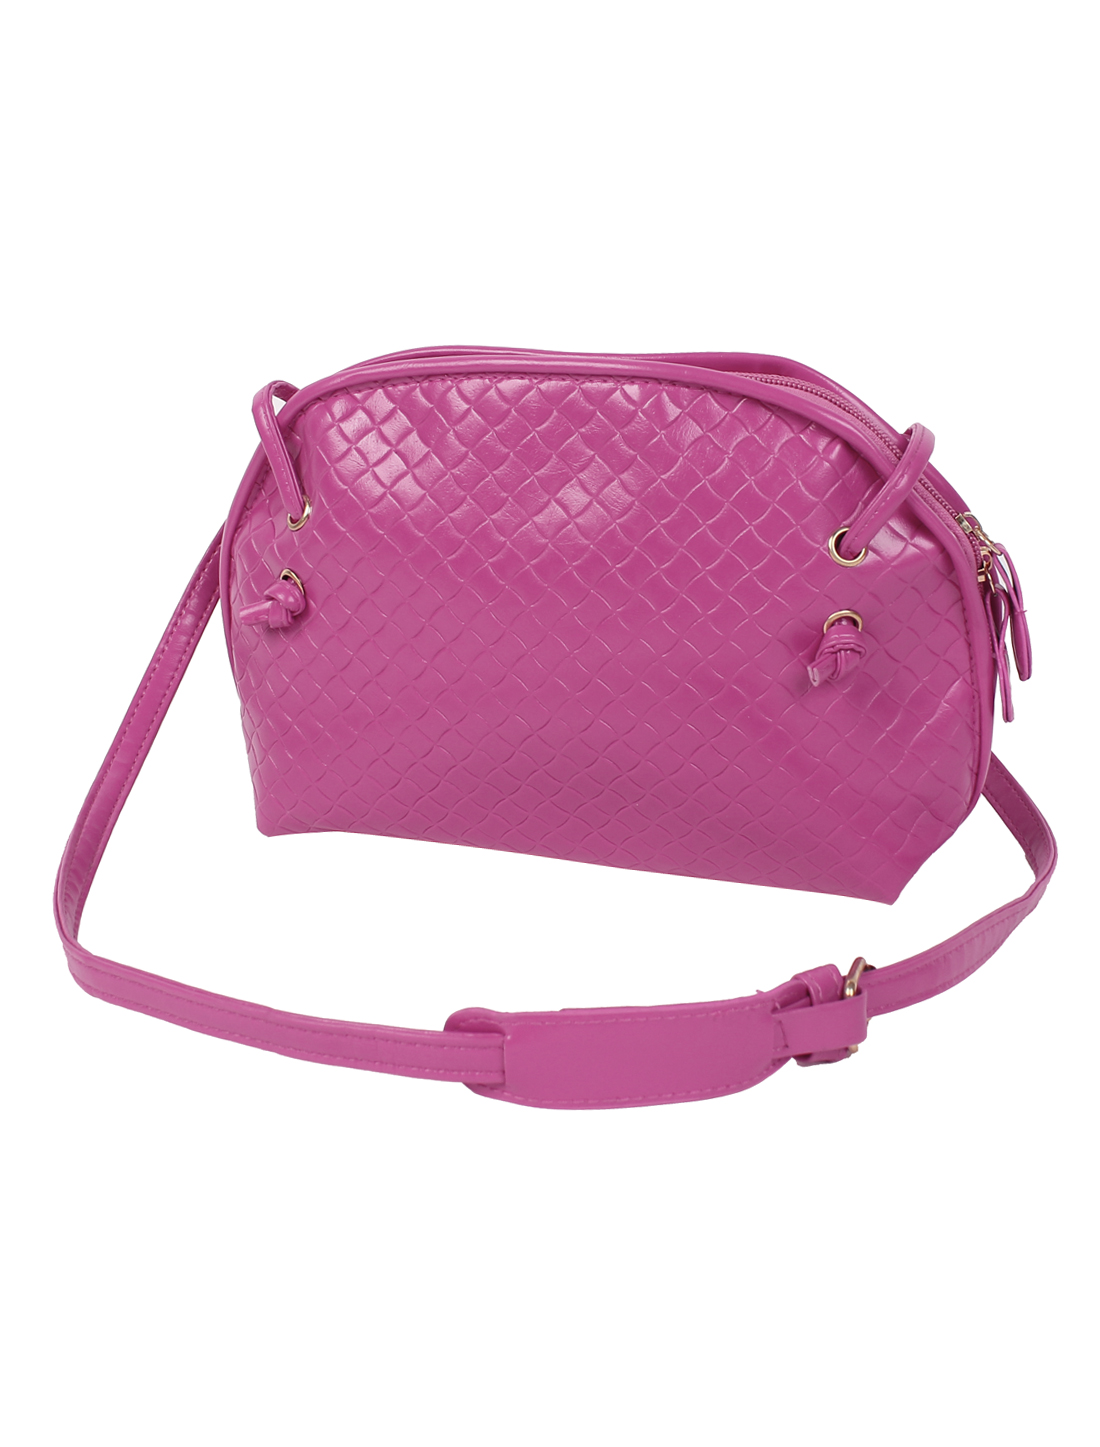 Women PU Tote Satchel Messenger Bag Casual Purse Cross Body Shoulder Handbag Fuchsia